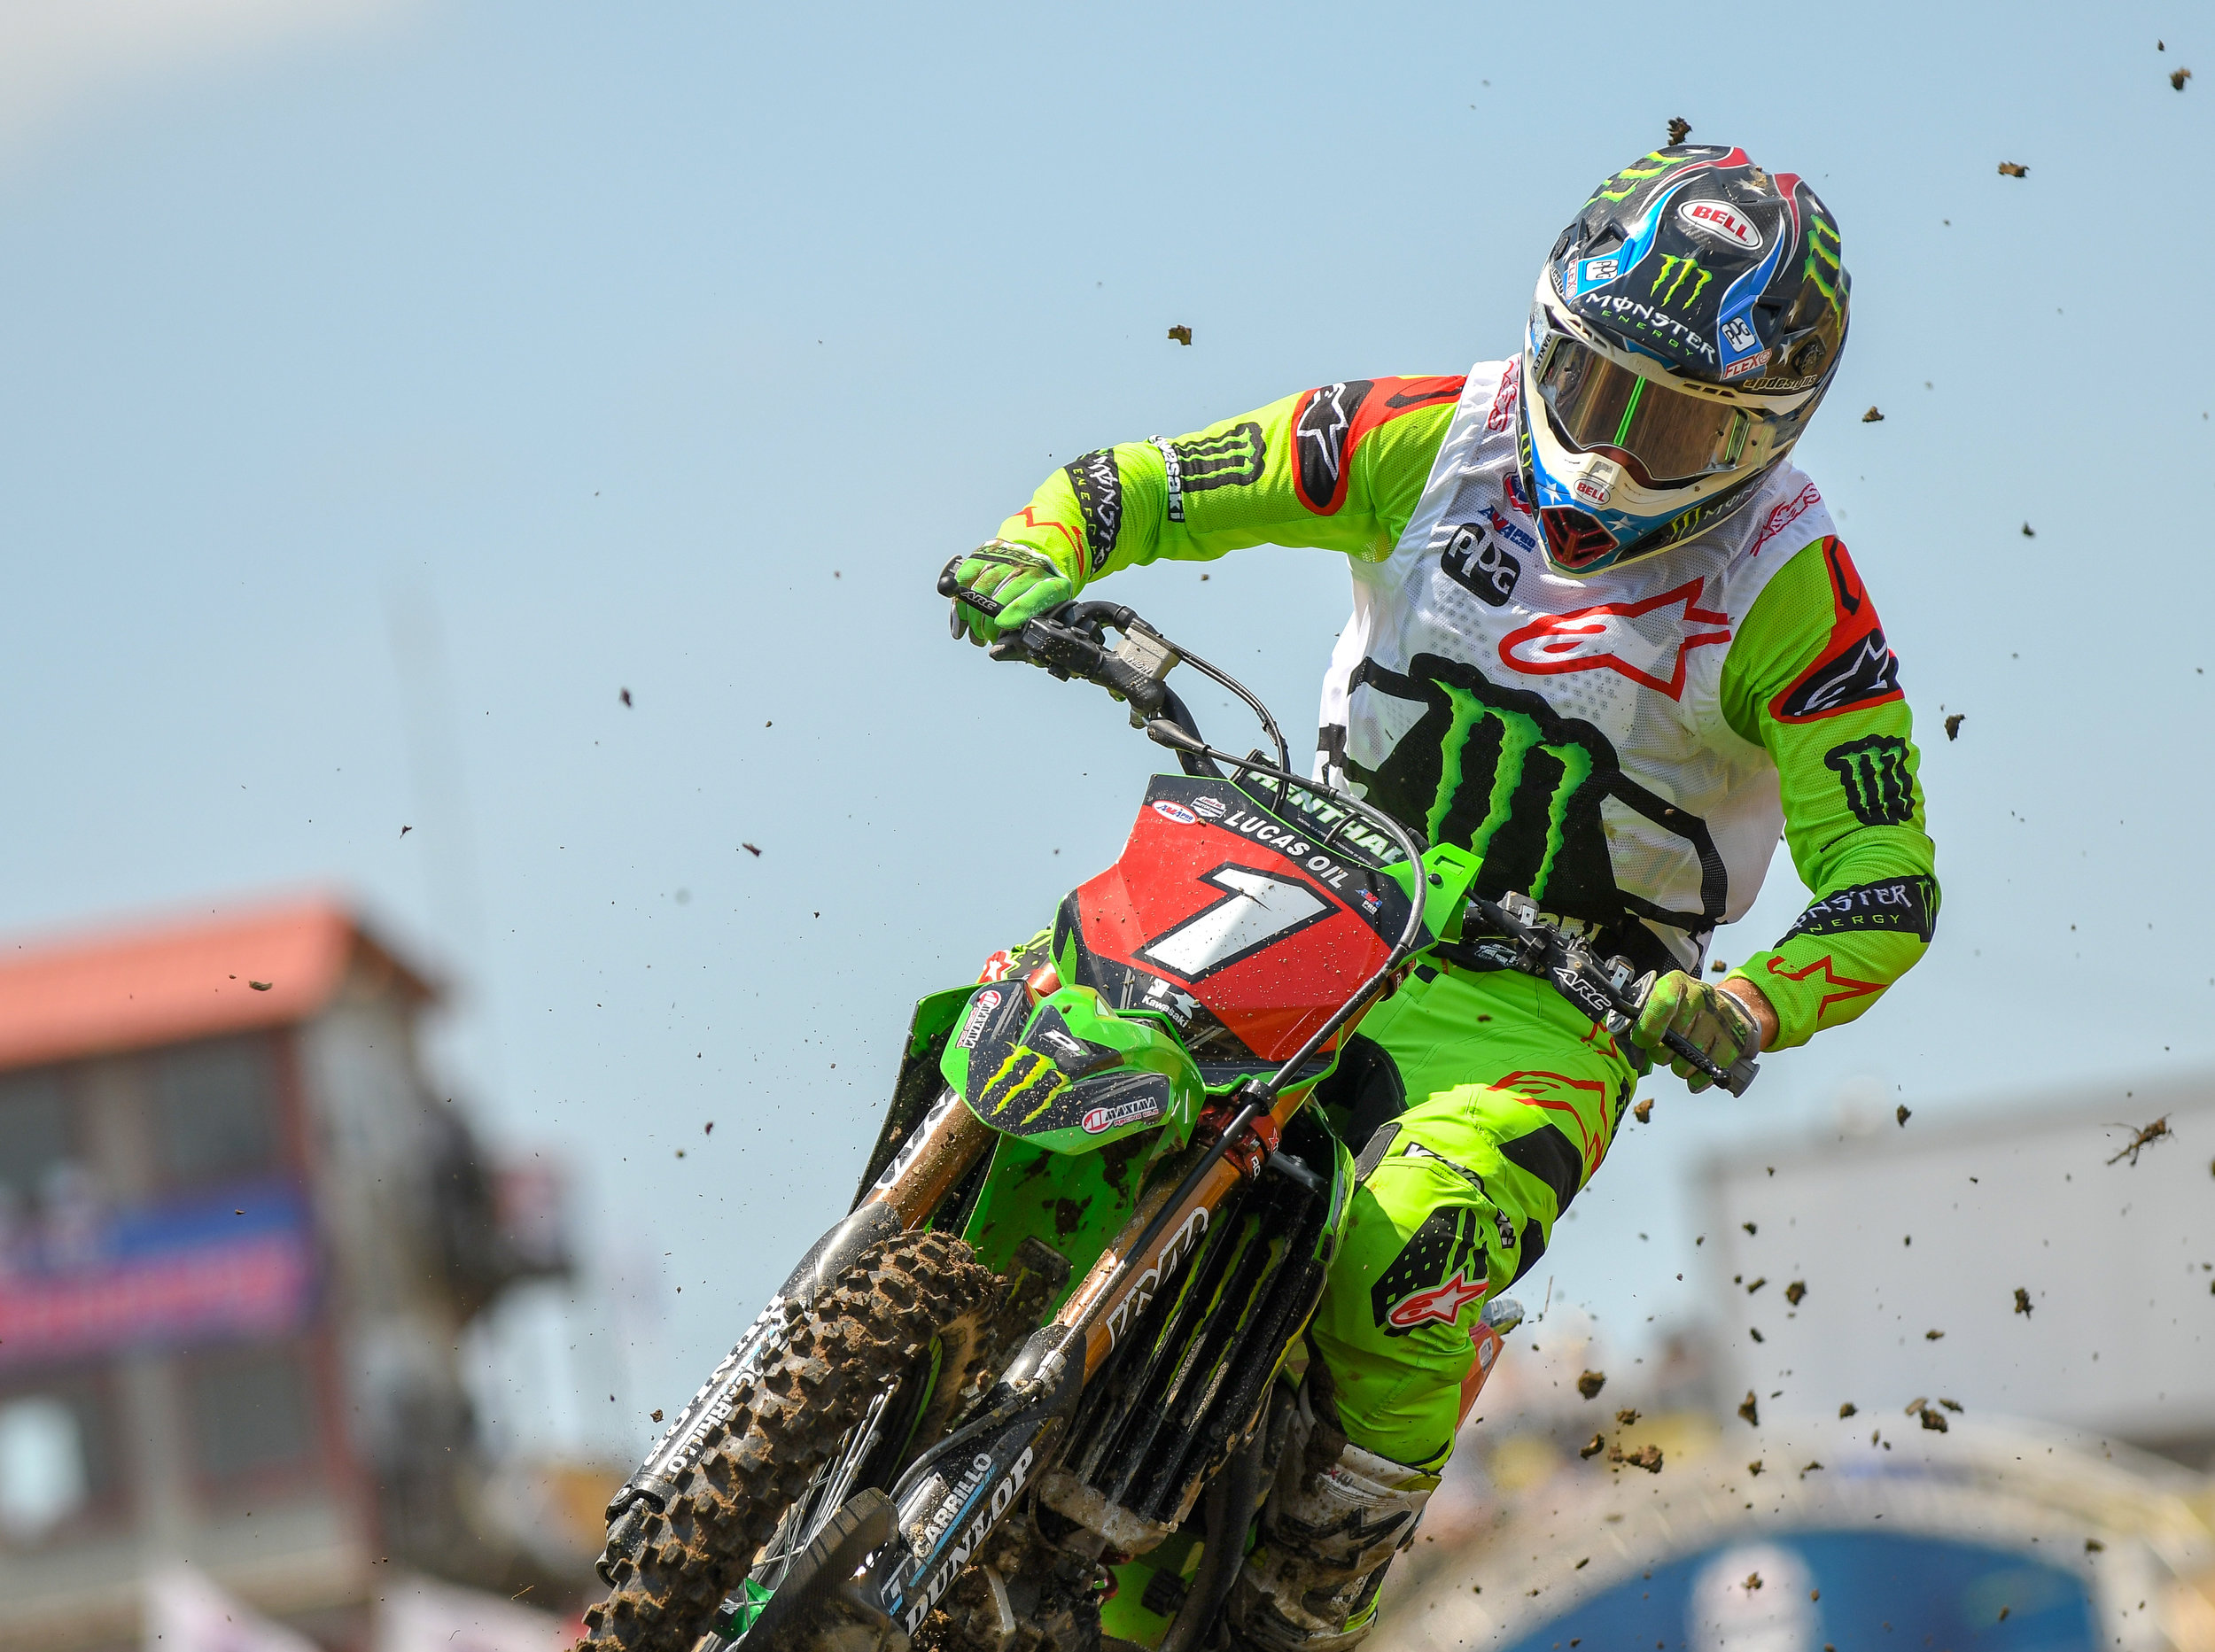 Eli Tomac of Monster Energy Kawasaki